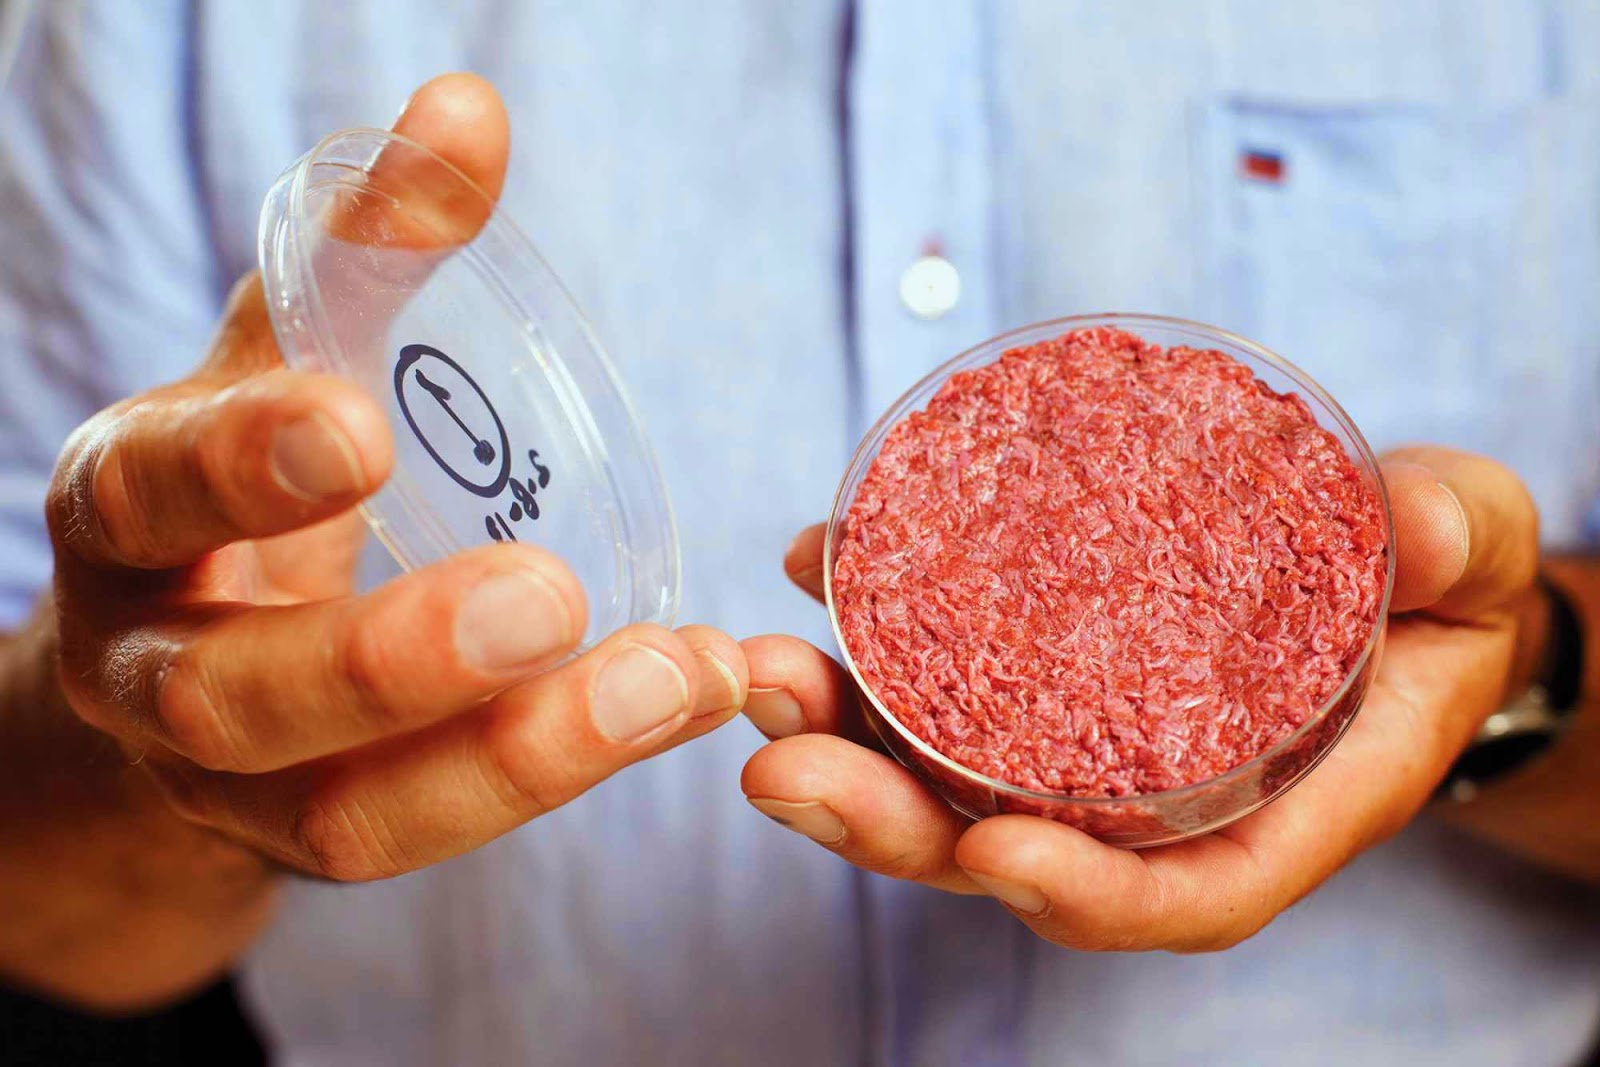 Lab-grown burger